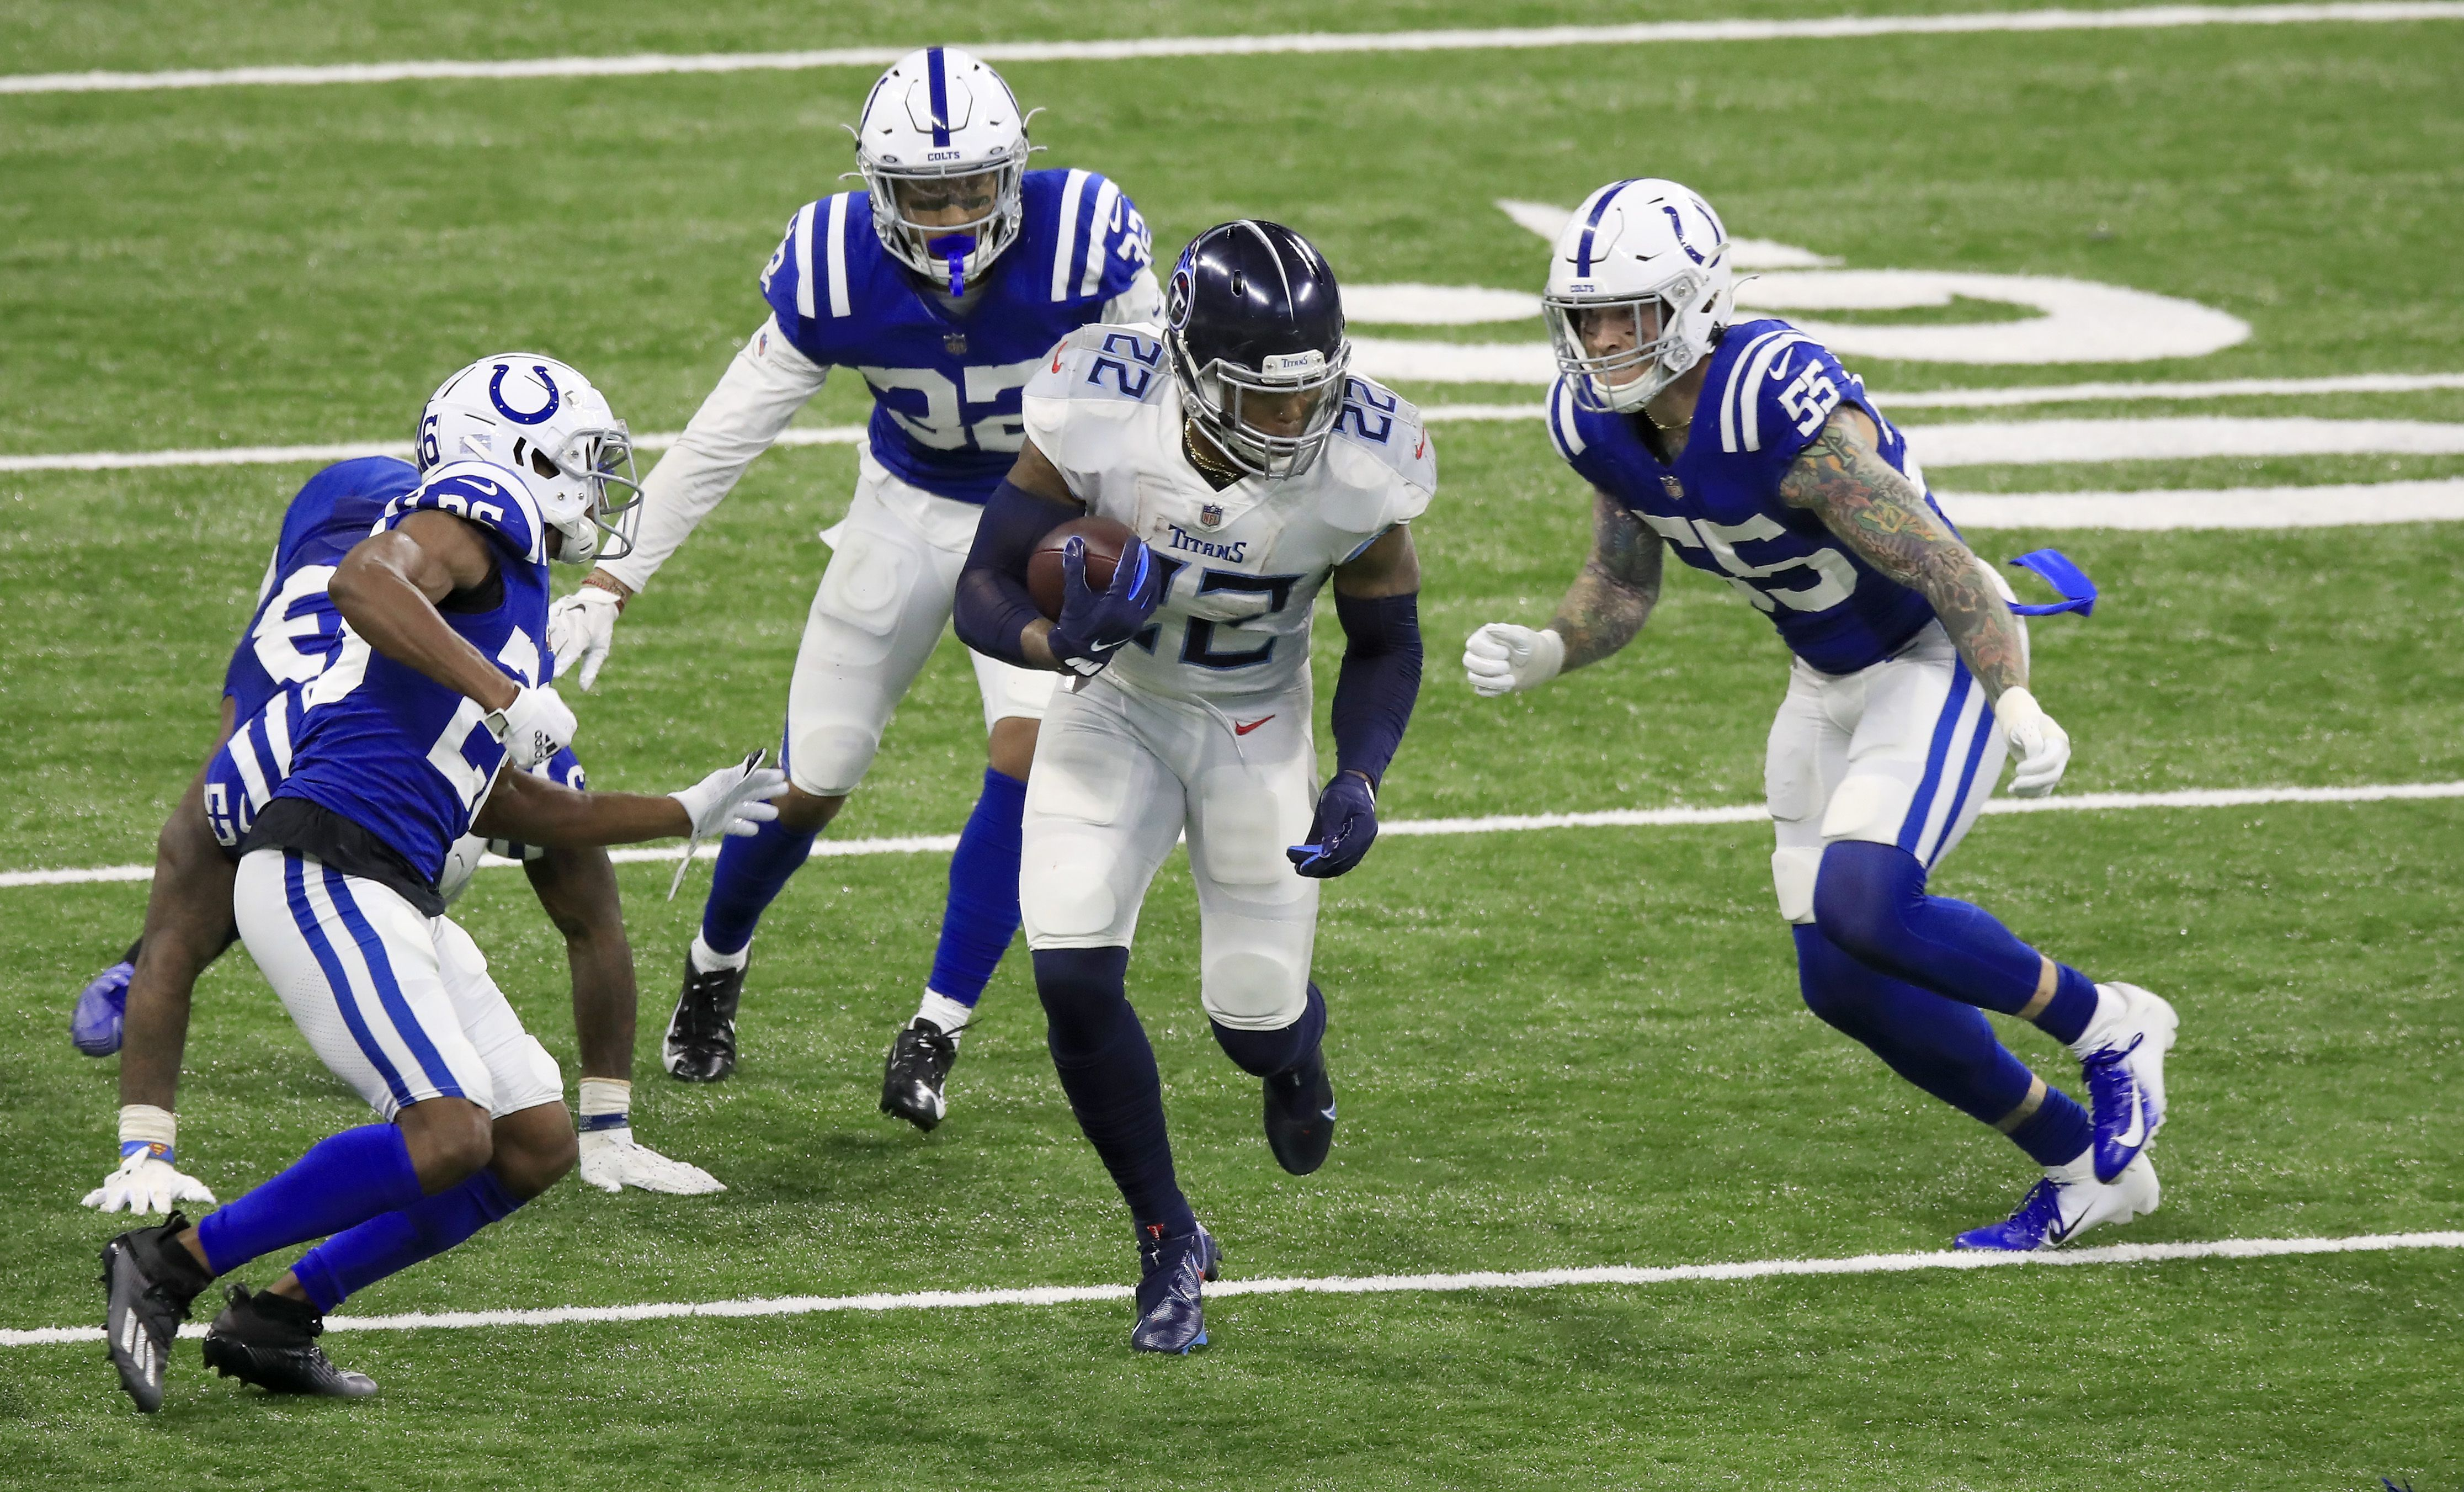 Tennessee Tiatns v Indianapolis Colts